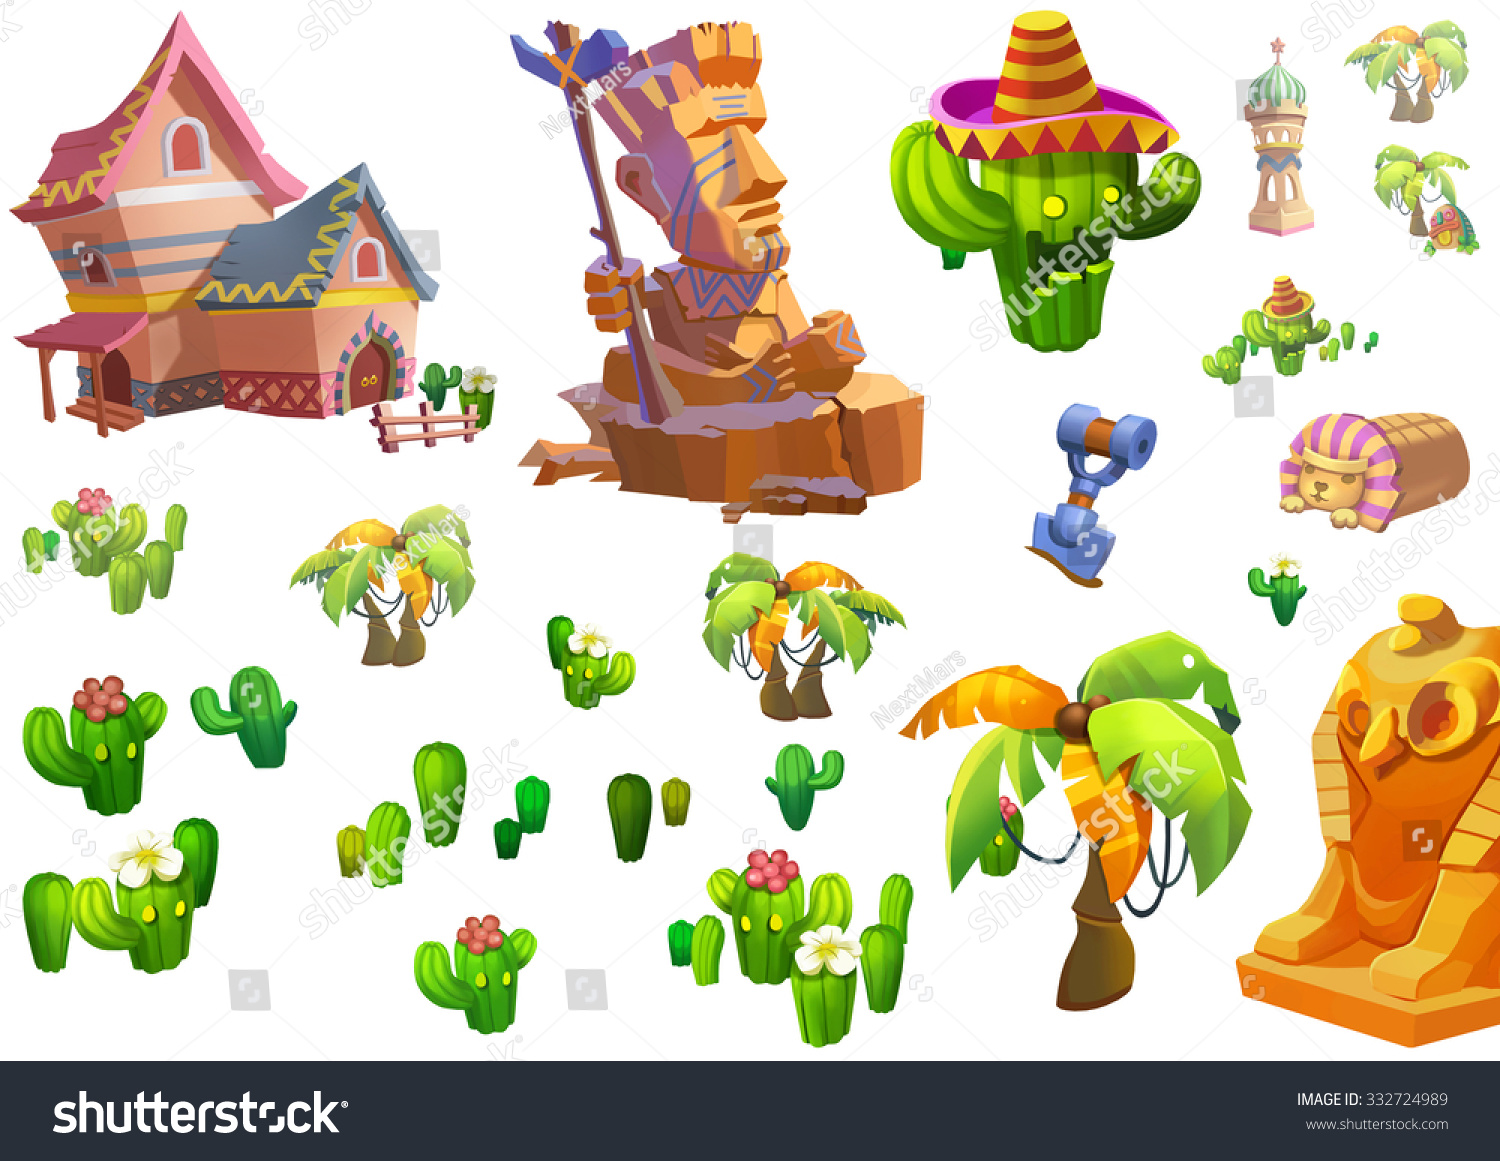 illustration desert theme elements design game assets the house the tree